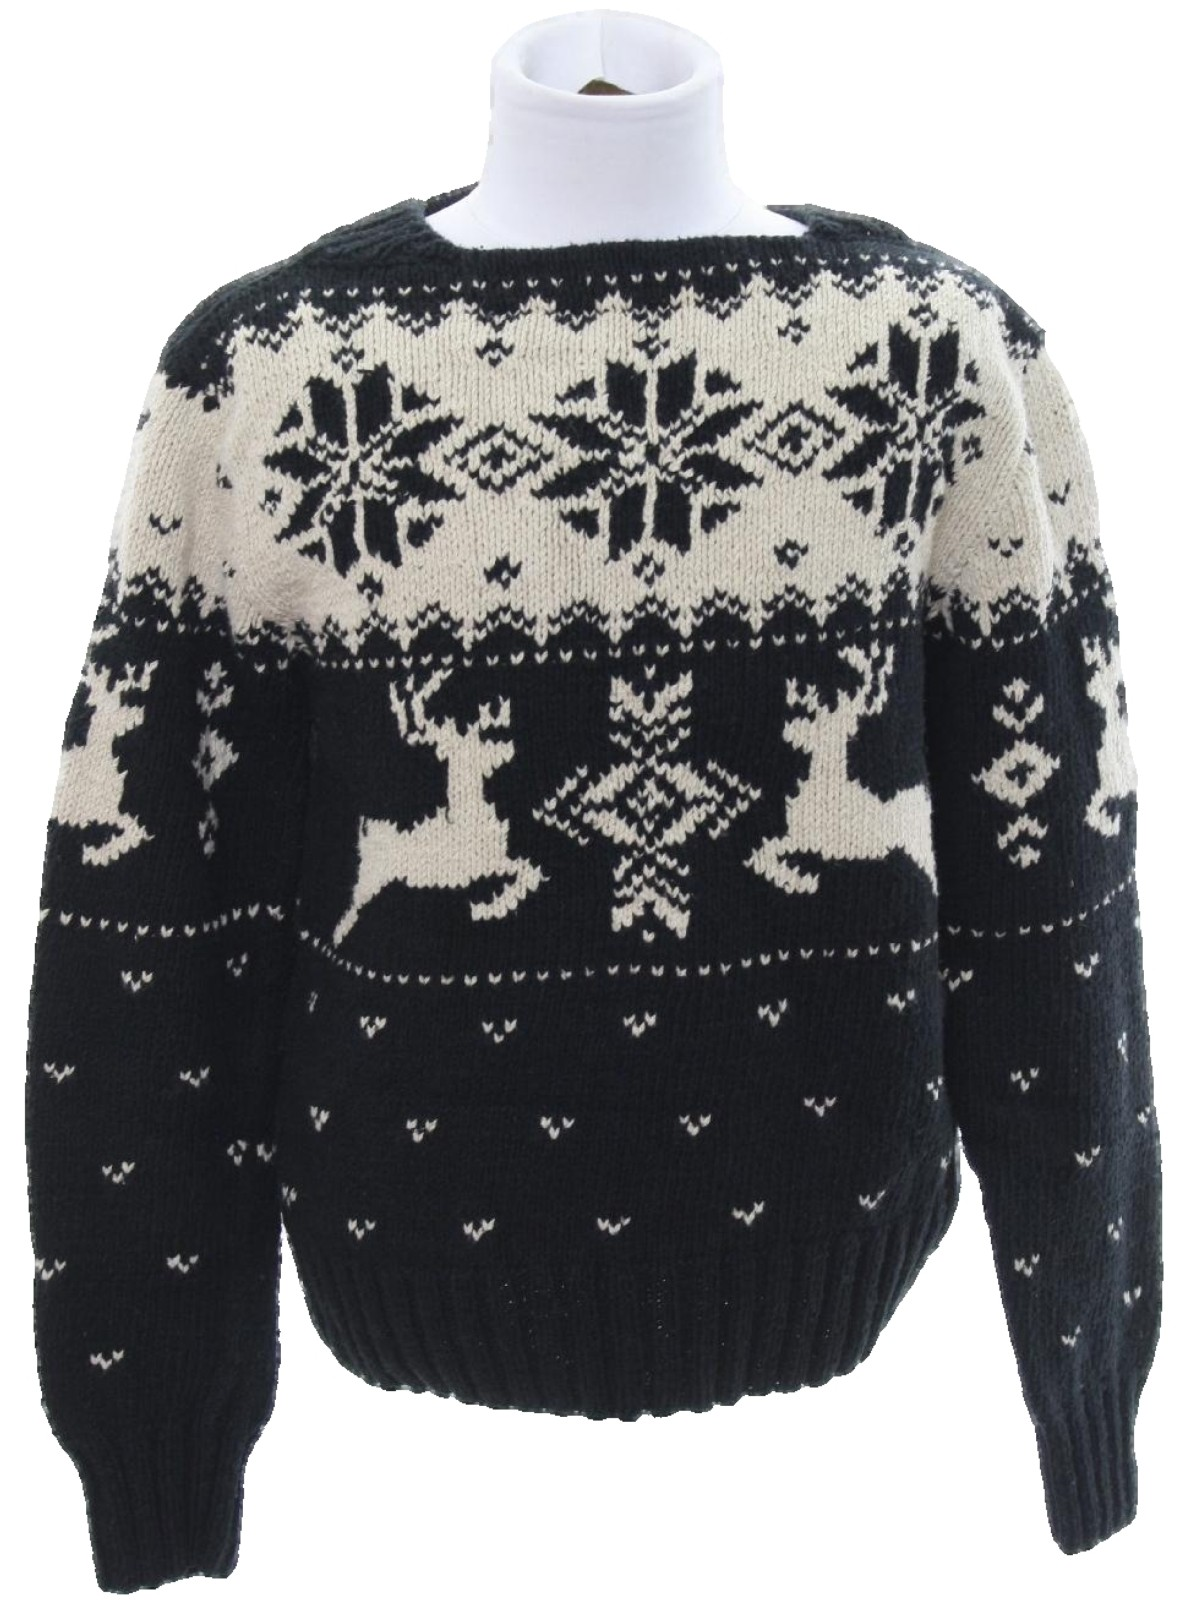 childs ugly christmas snowflake reindeer sweater polo by ralph lauren unisexchilds black background cotton pullover longsleeve ugly christmas sweater - Reindeer Christmas Sweater